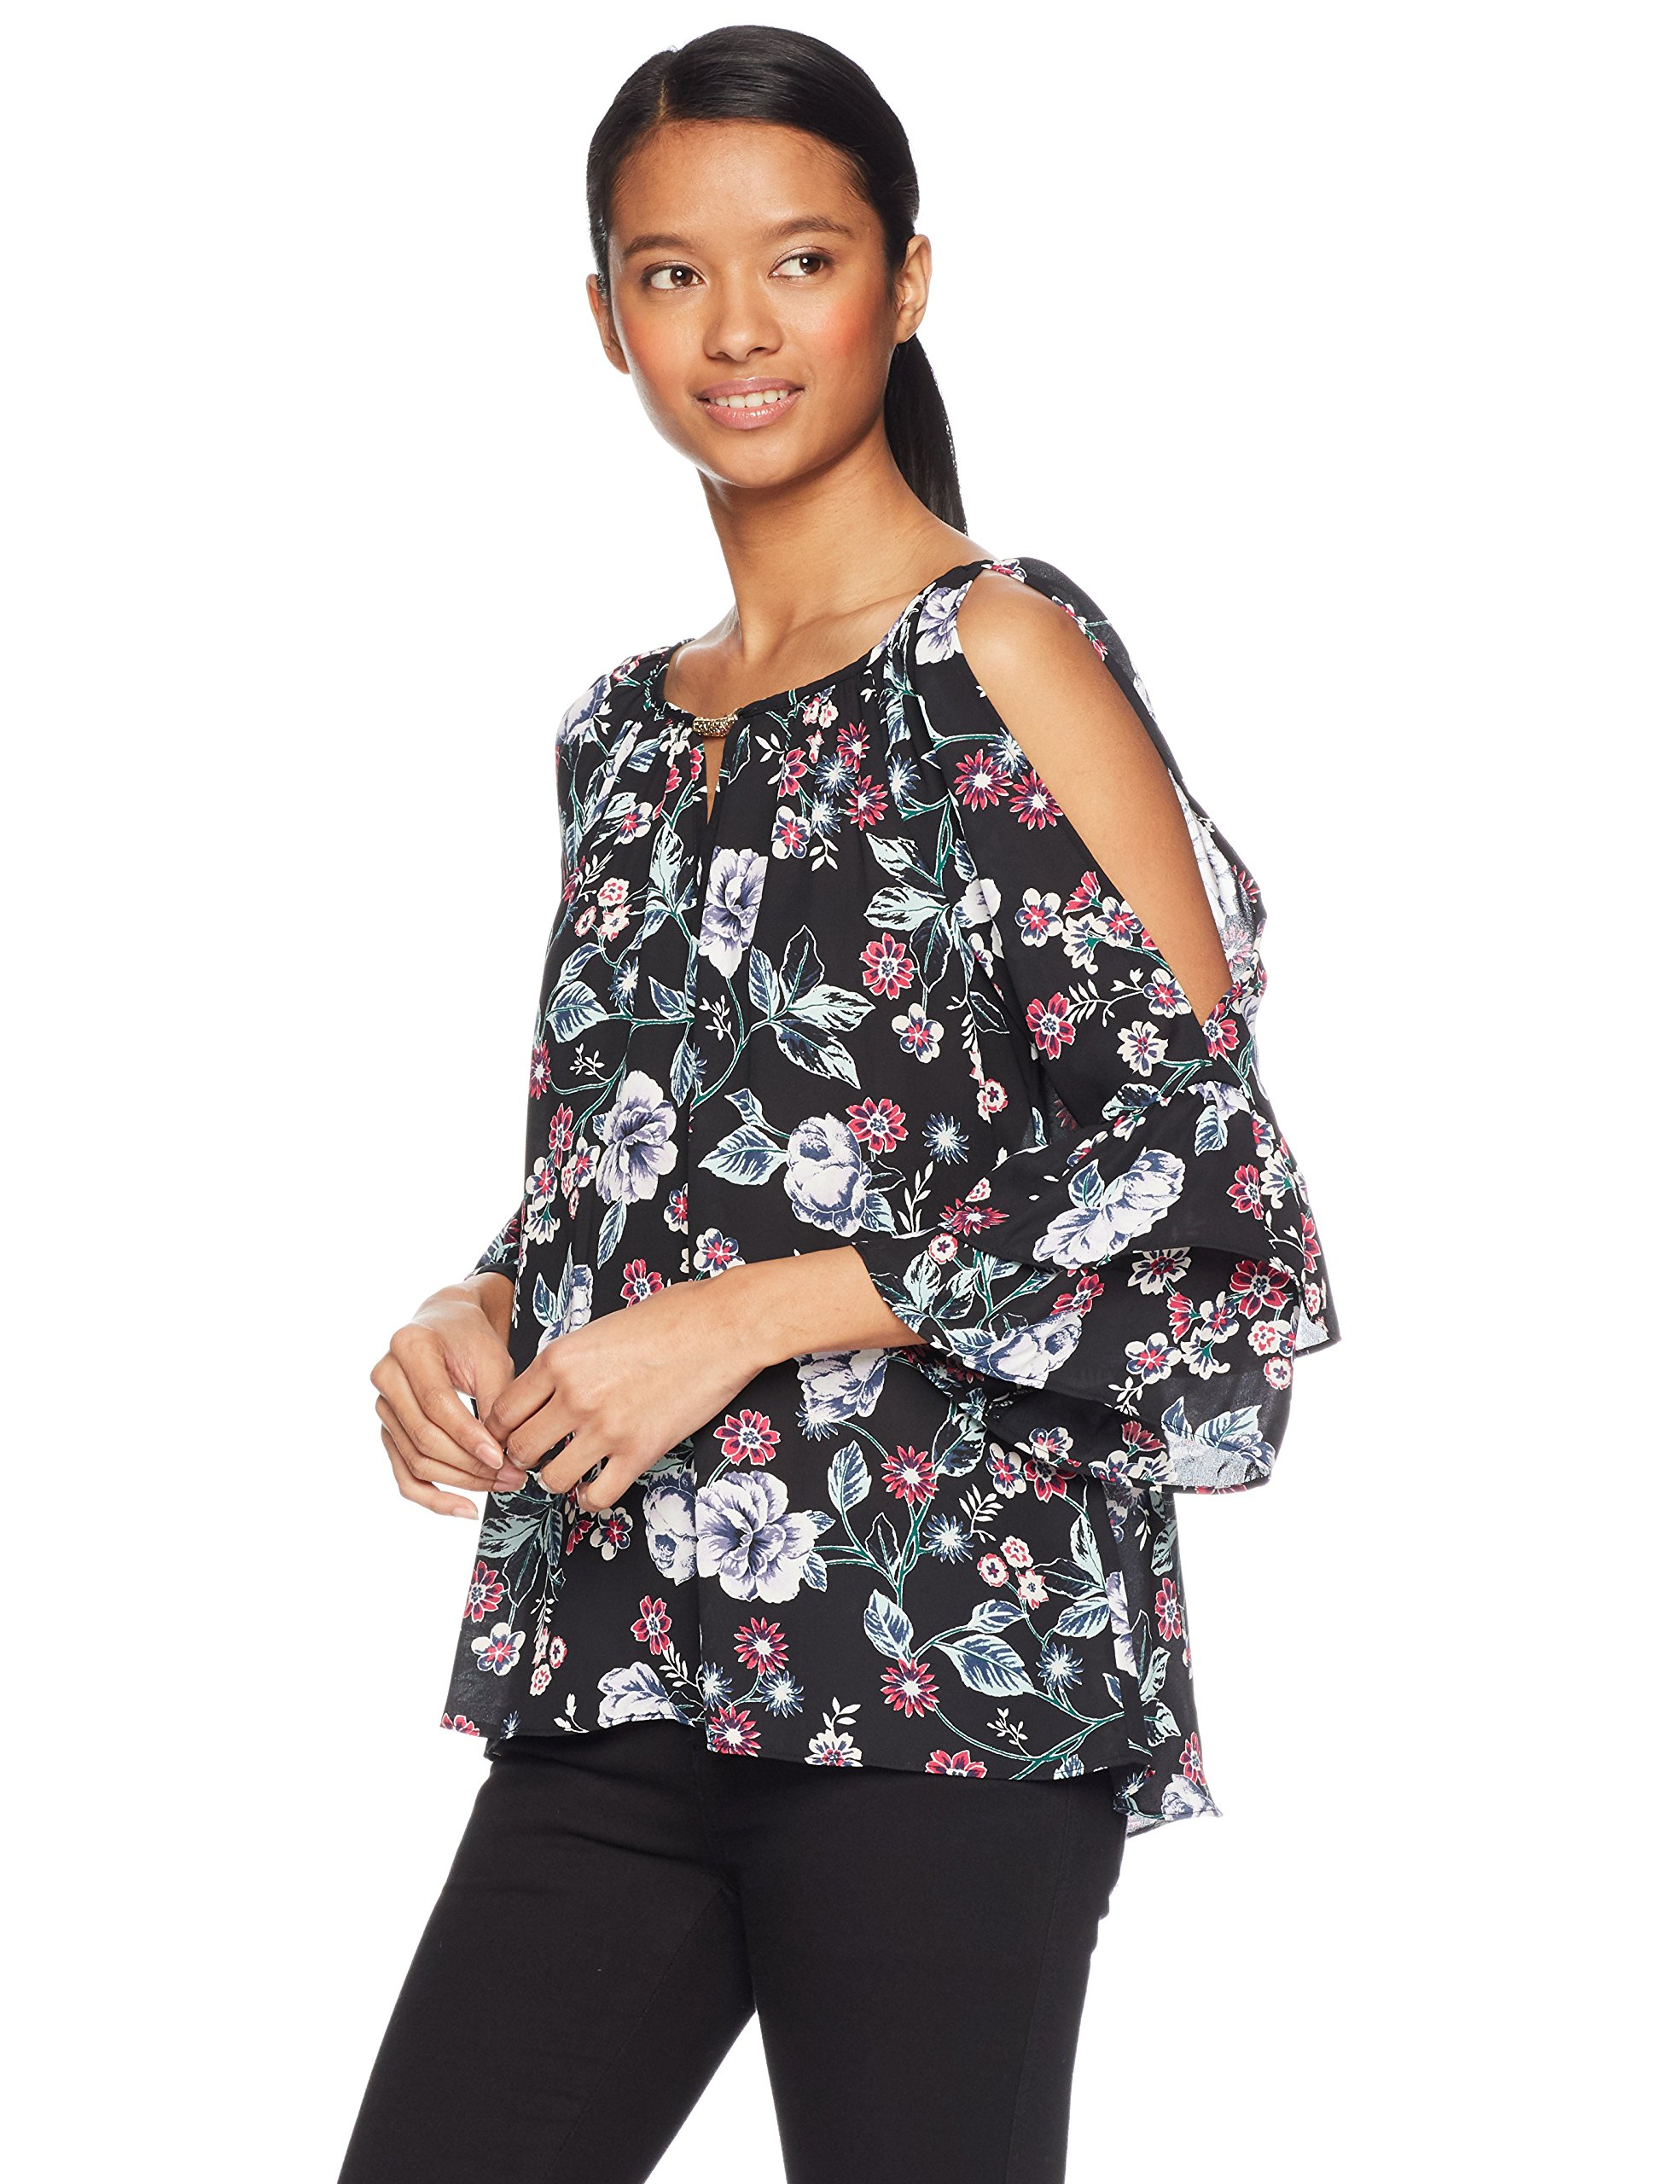 A. Byer 3/4 Tiered Sleeve Keyhole Top (Junior's), Lilac Floral, M